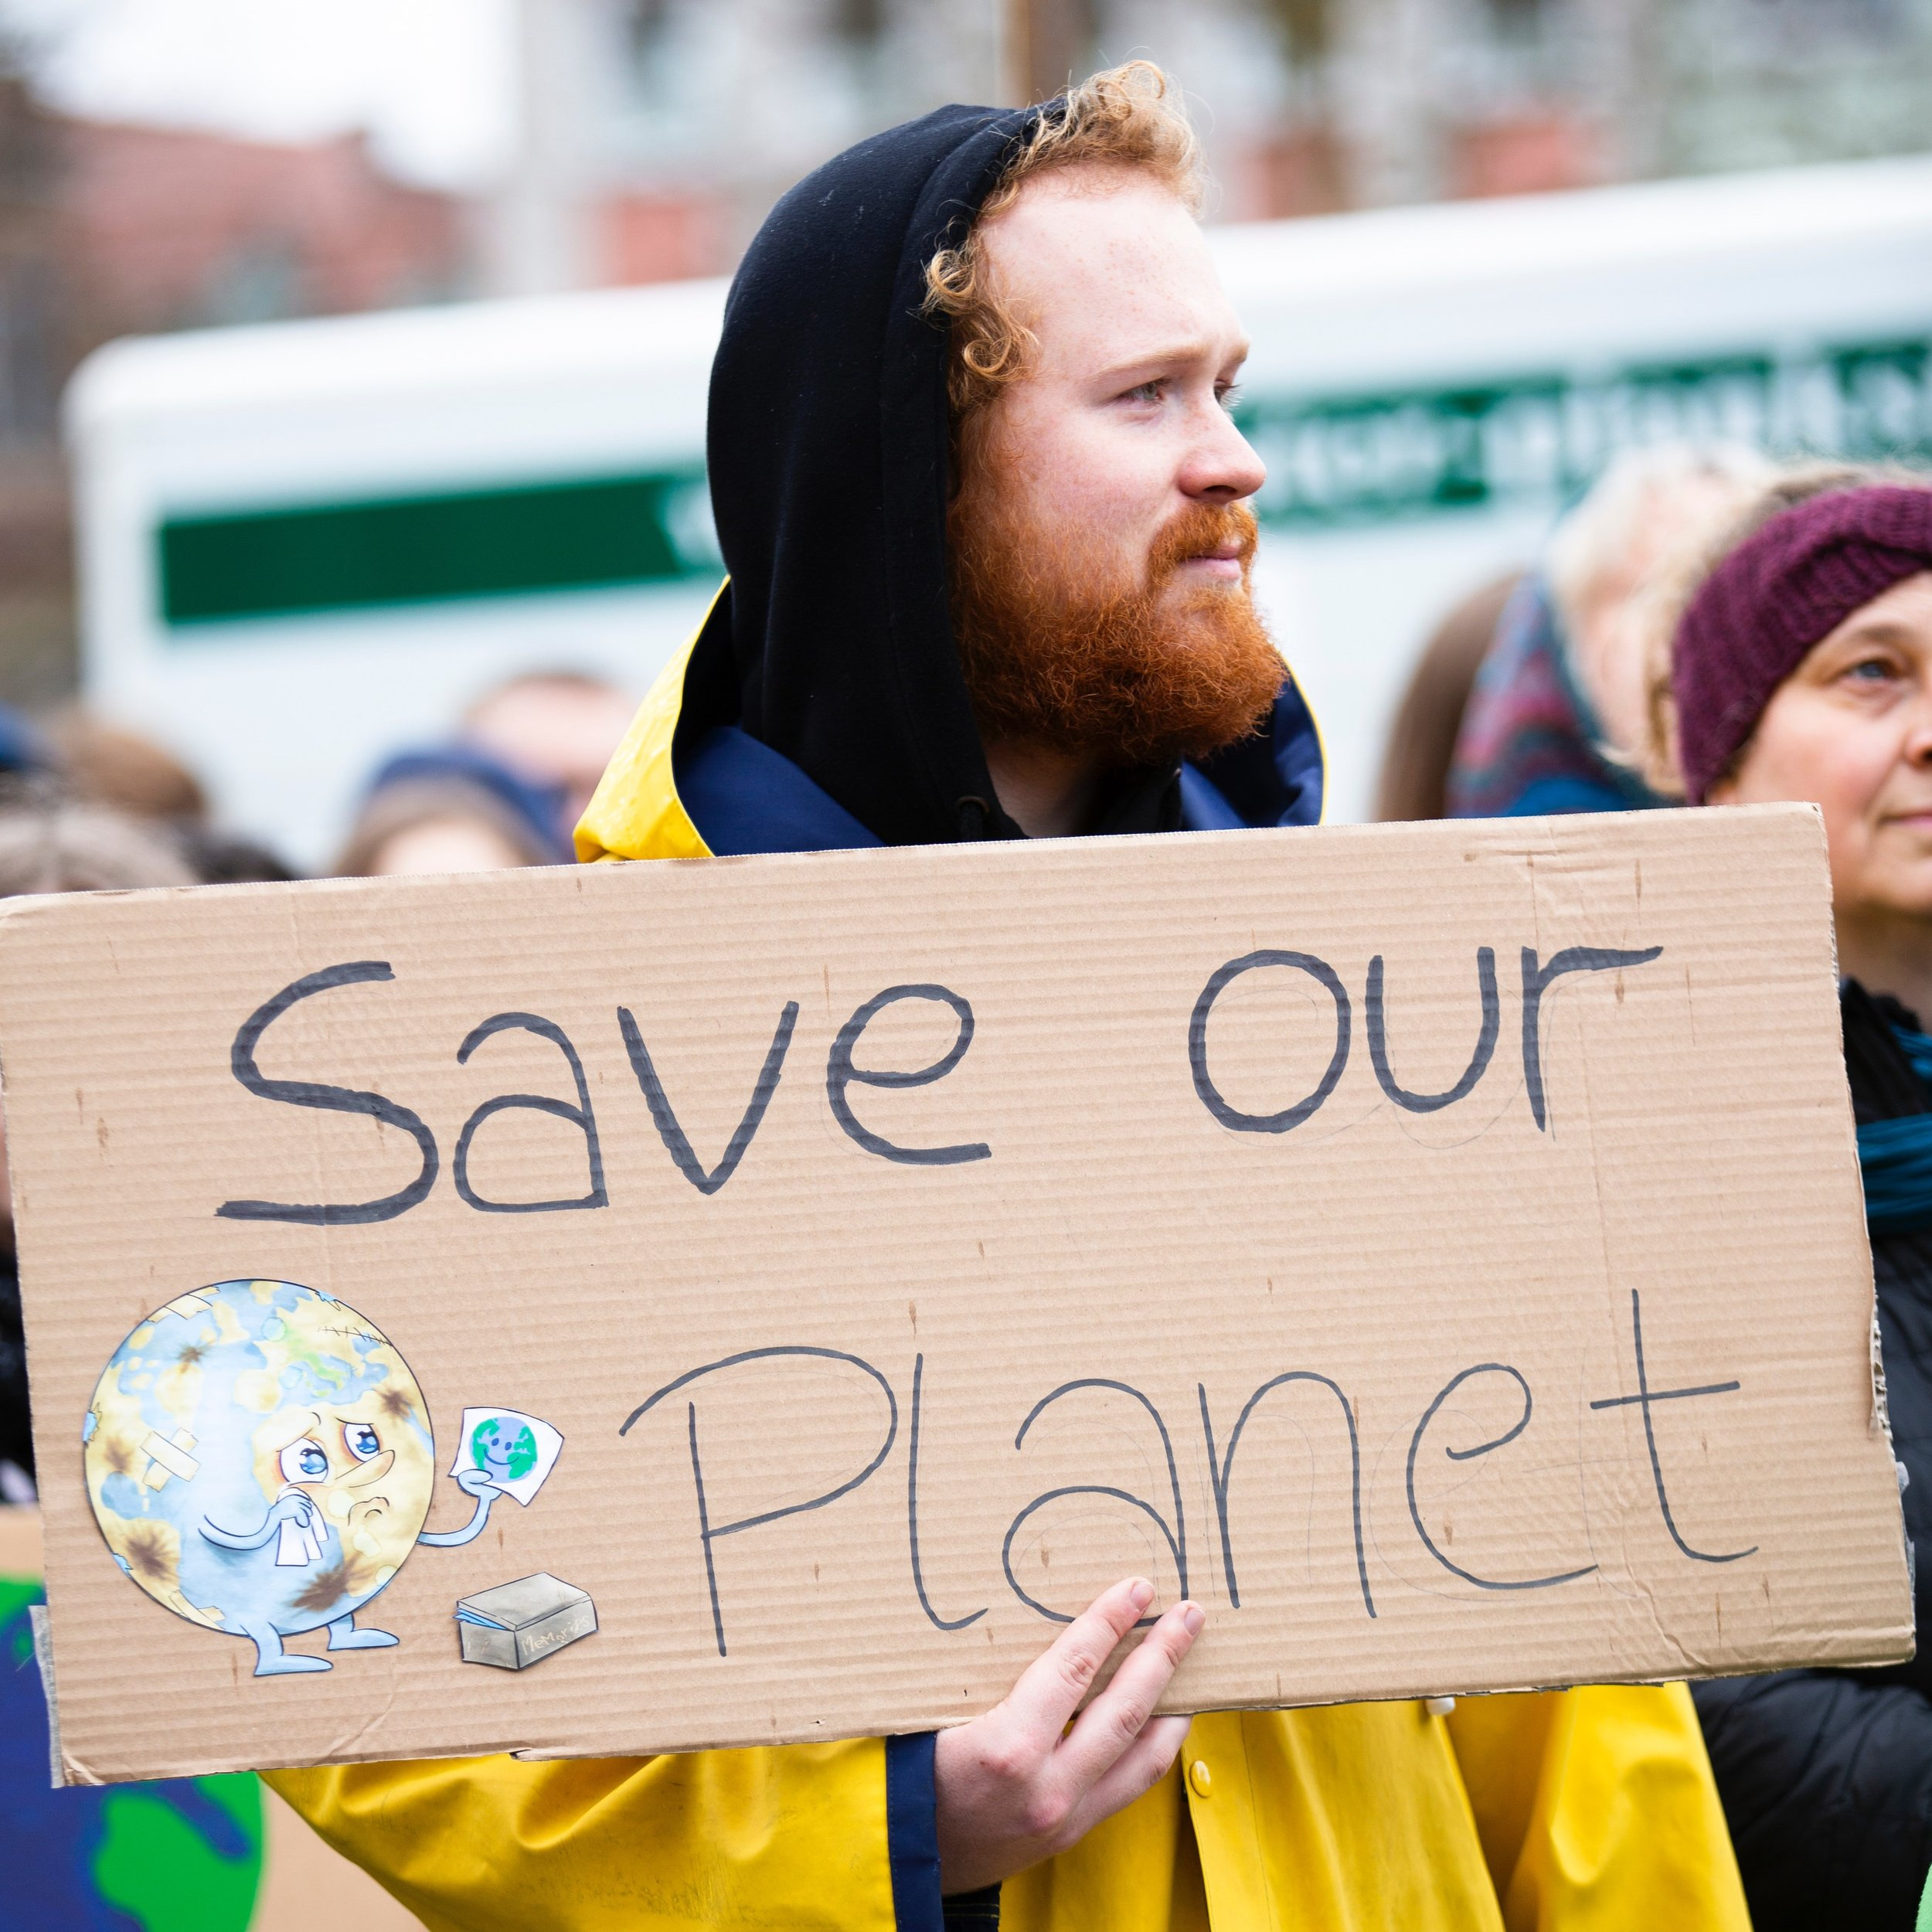 PLANET CHANGE - PlanetChange is a website that has the aim of helping people live a greener lifestyle by recommending environmentally friendly companies in all areas of life. Planetchange will thus make money and have a great impact on our planet.Based In: Belgium